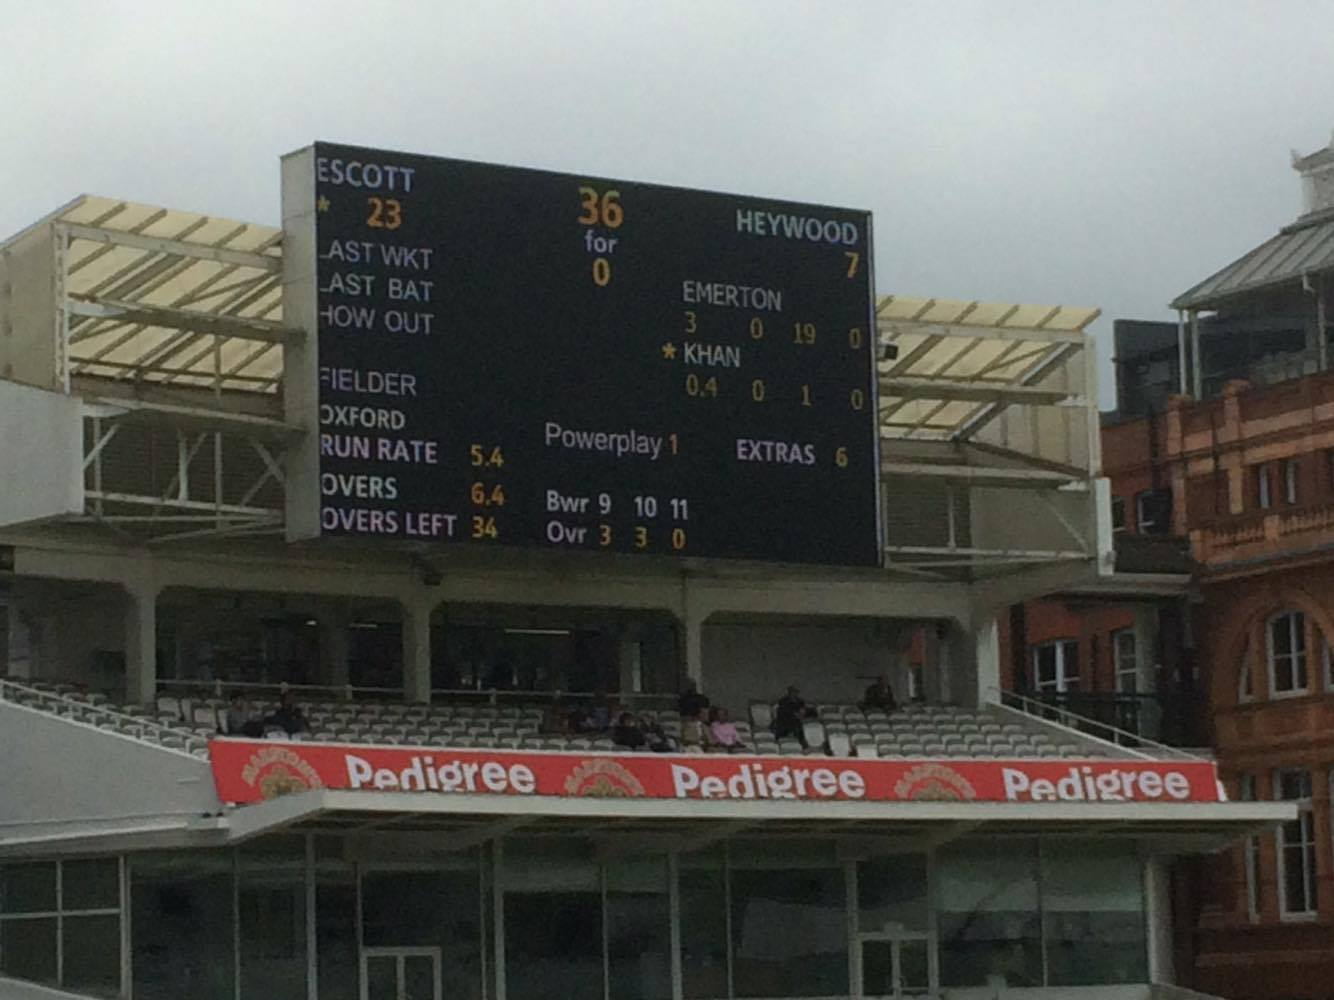 Here is a photo of the scoreboard